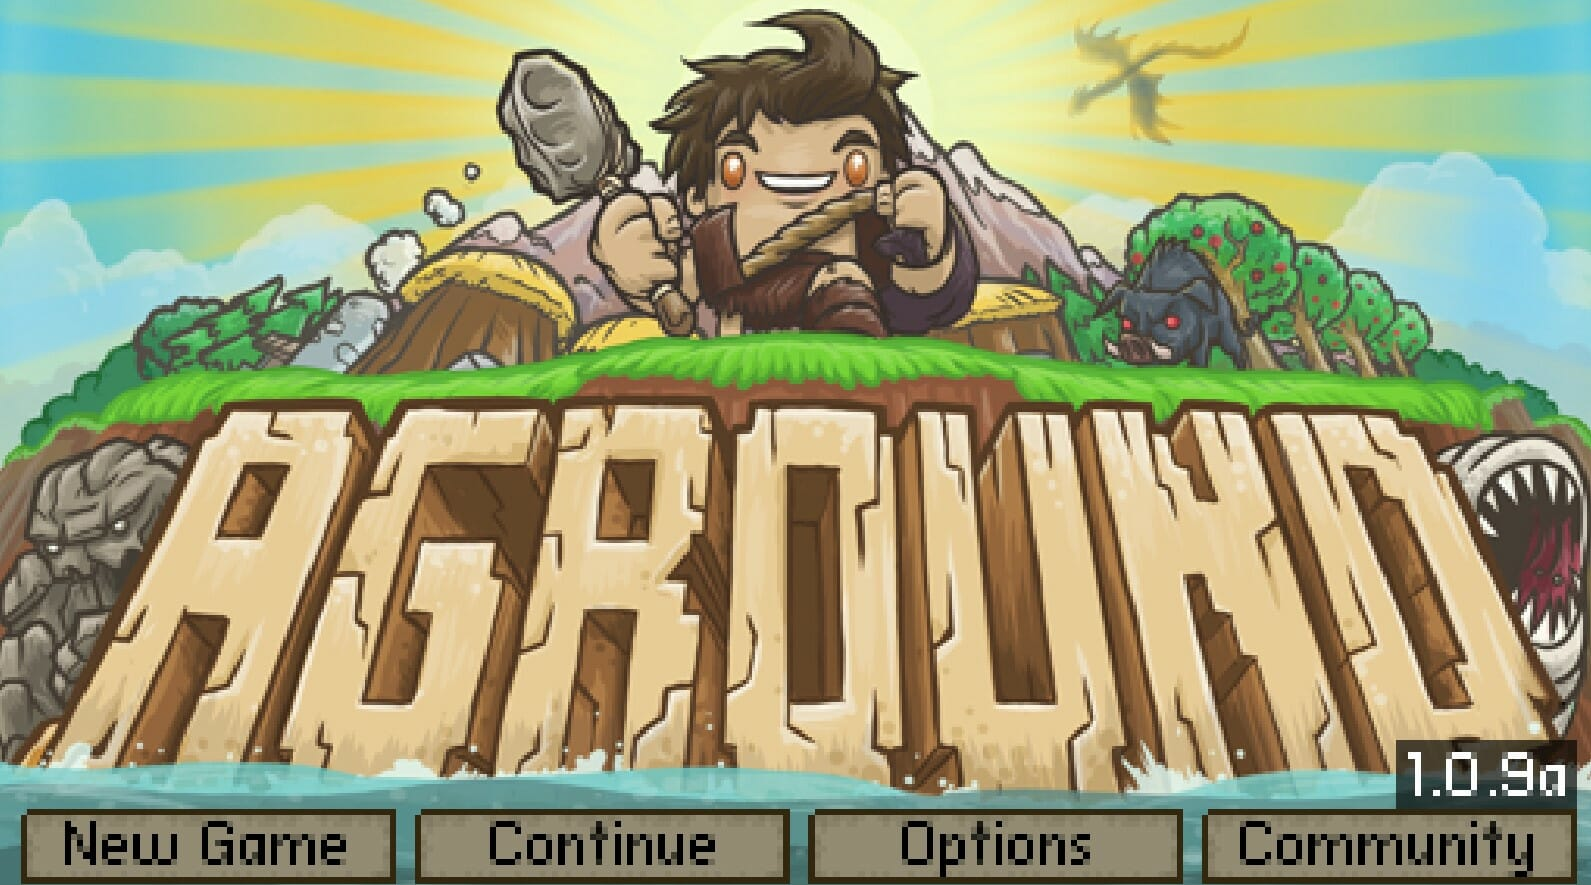 Play Aground Mining Game